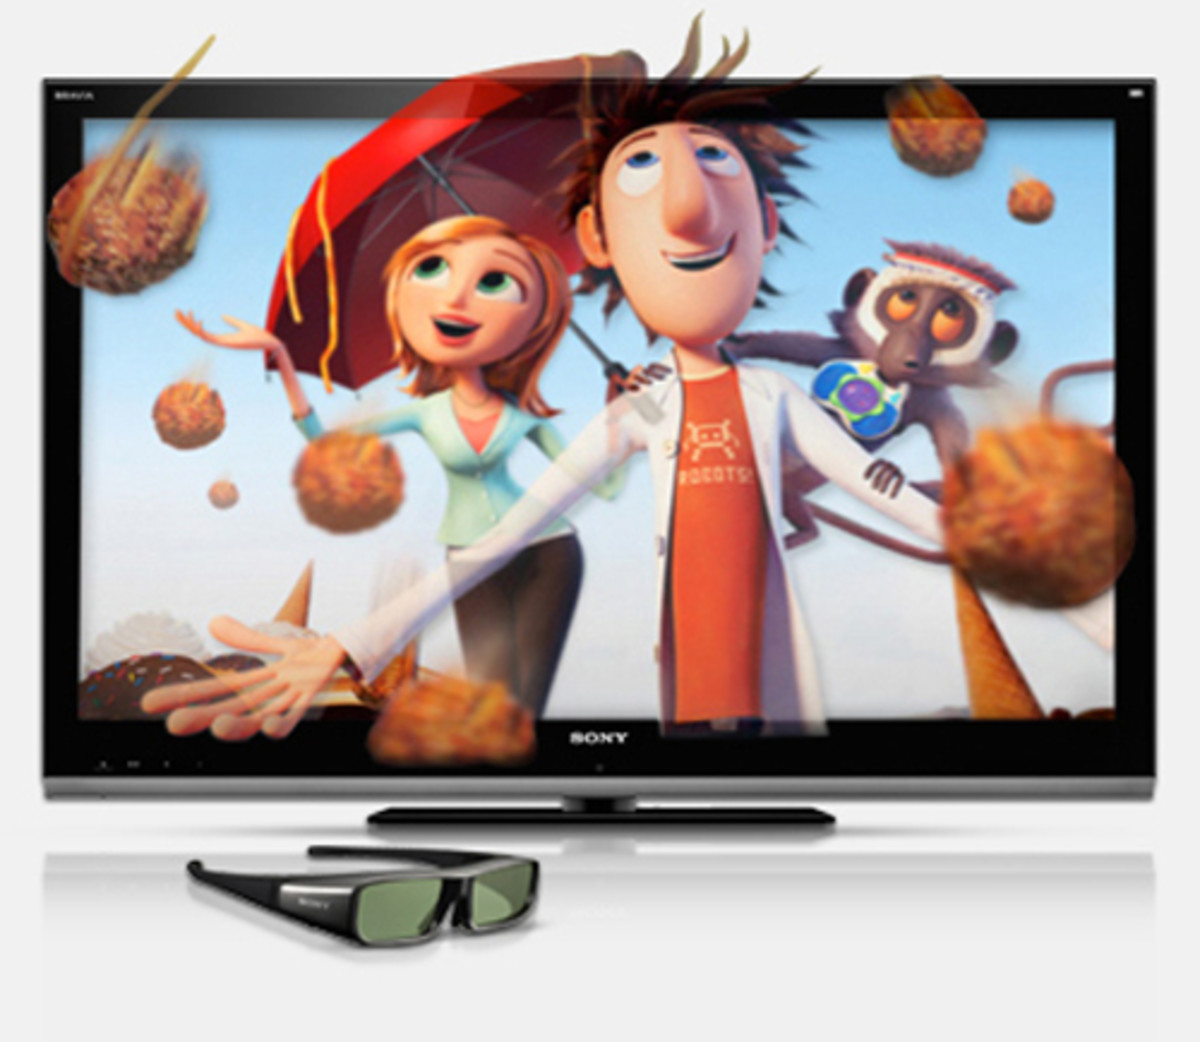 Sony XBR series TVs offer 3D functionality and come with a variety of pre-loaded Internet apps.